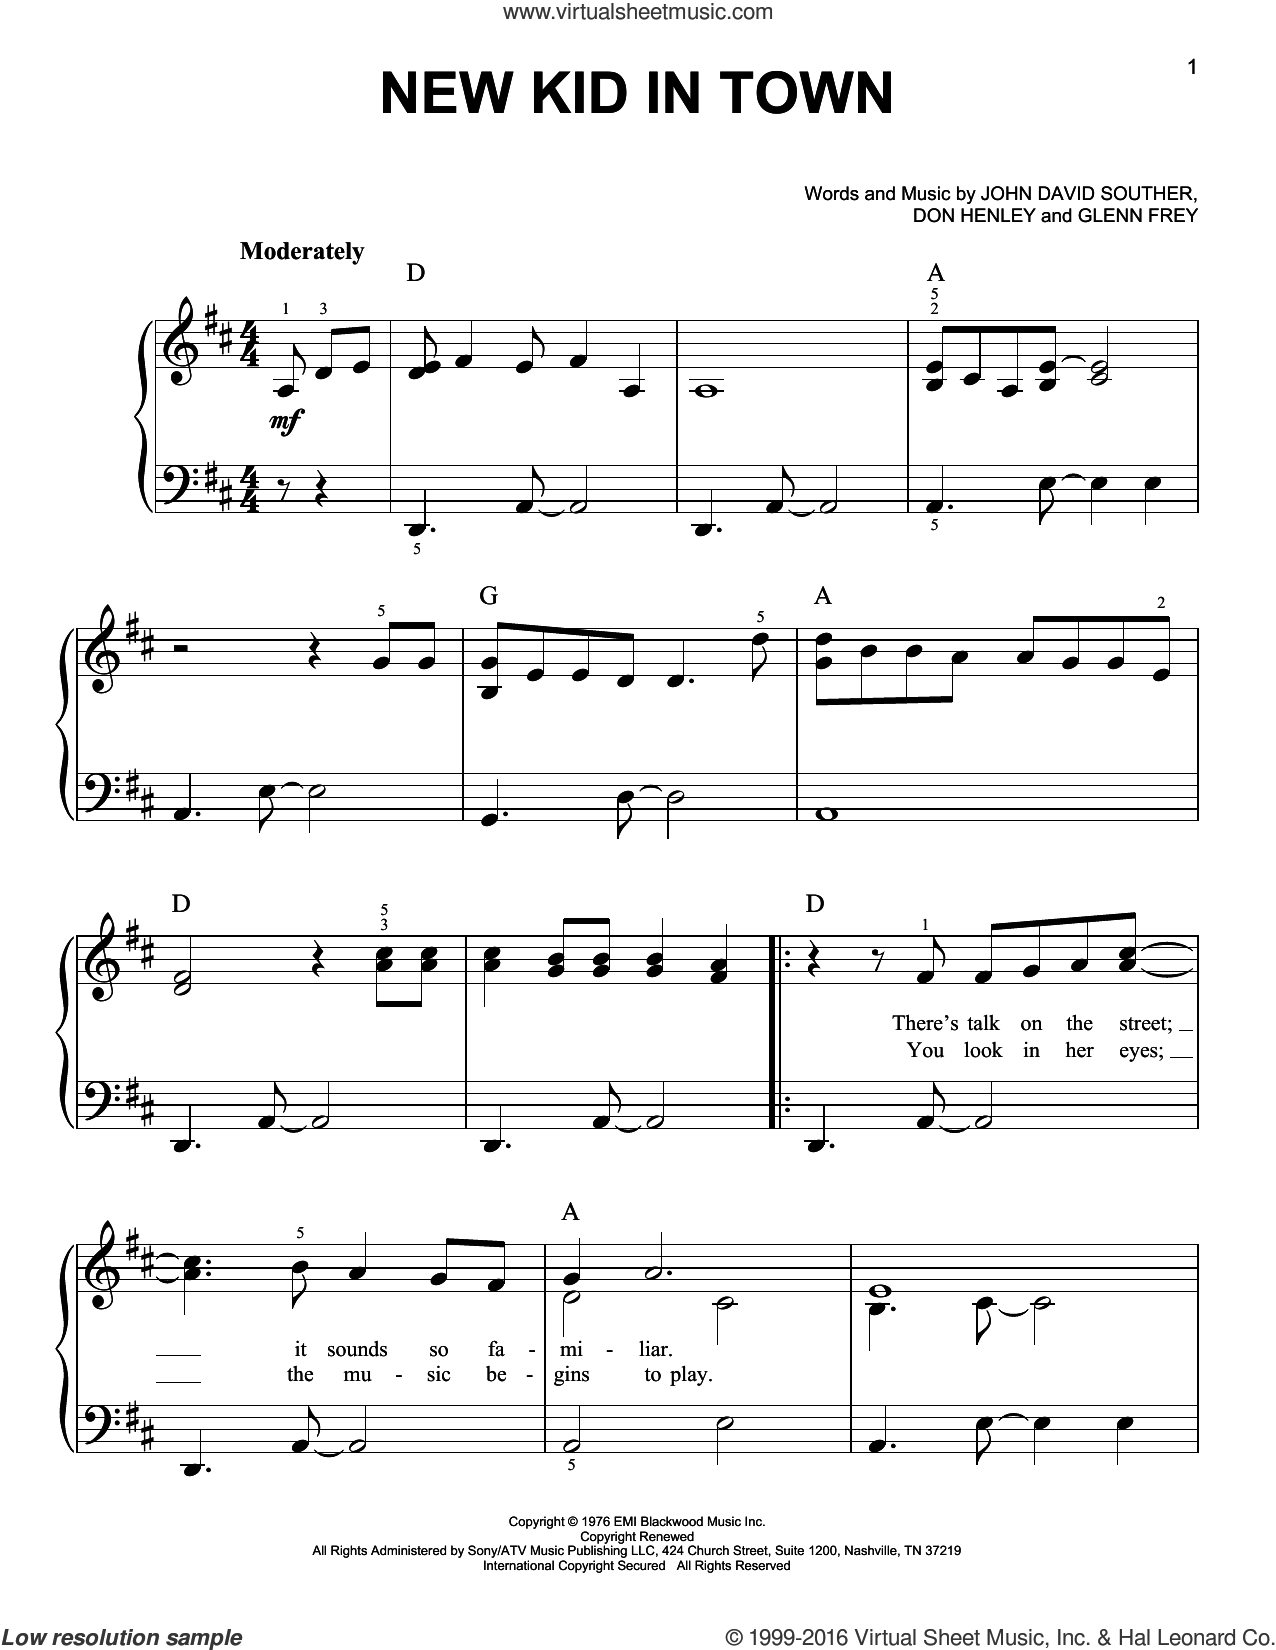 New Kid In Town sheet music for piano solo by Don Henley, The Eagles, Glenn Frey and John David Souther, easy skill level